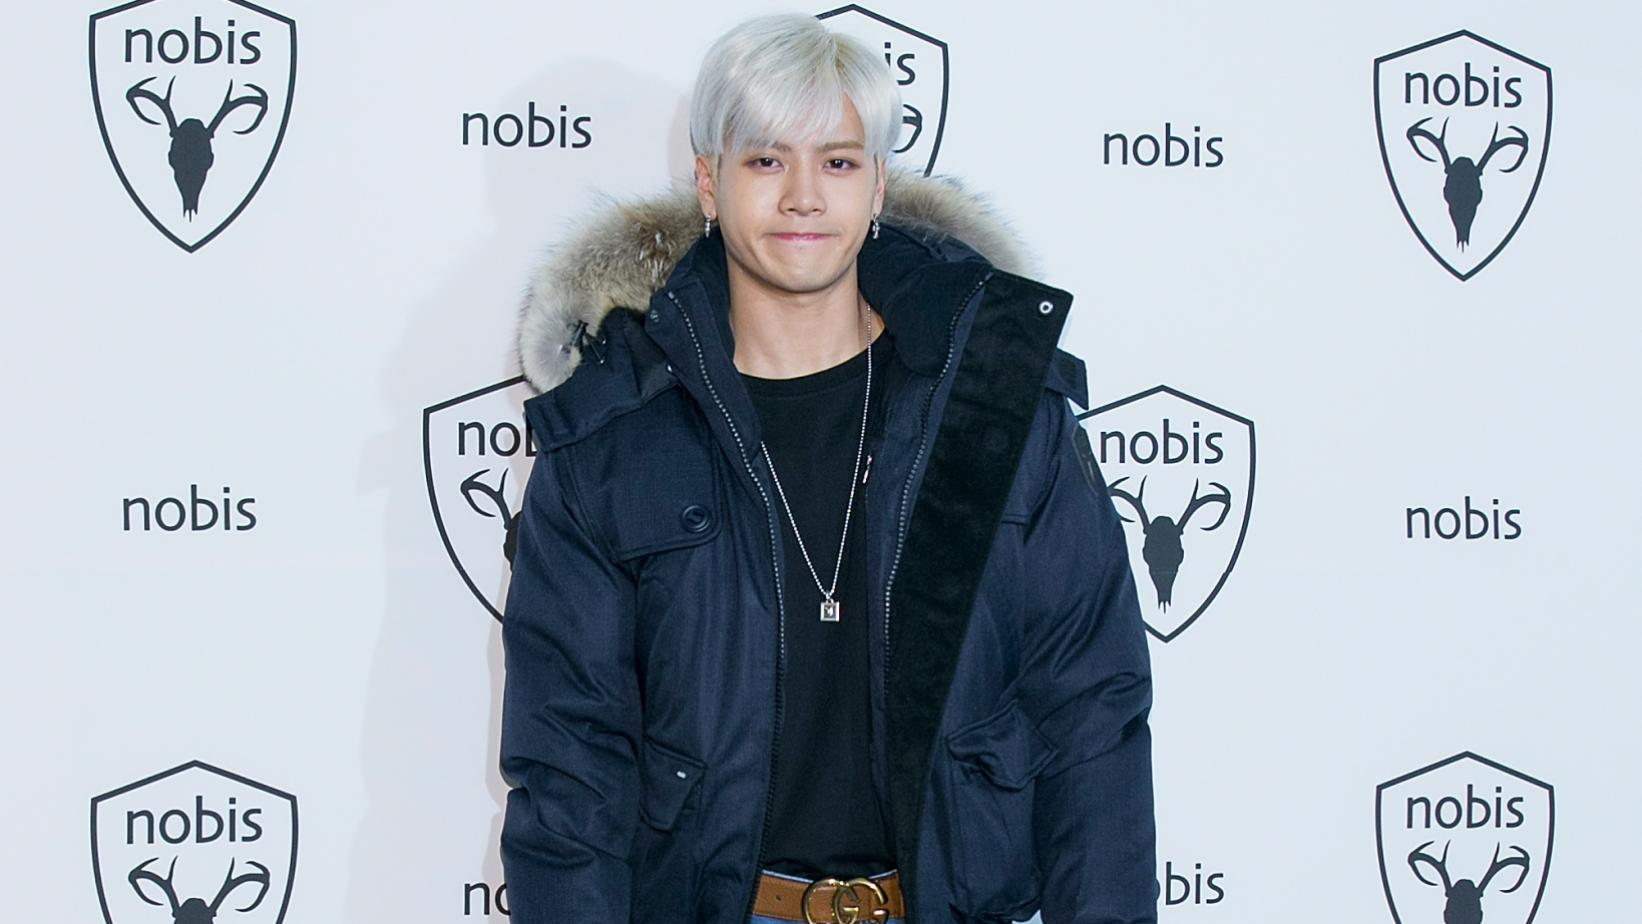 GOT7's Jackson photographed in 2015